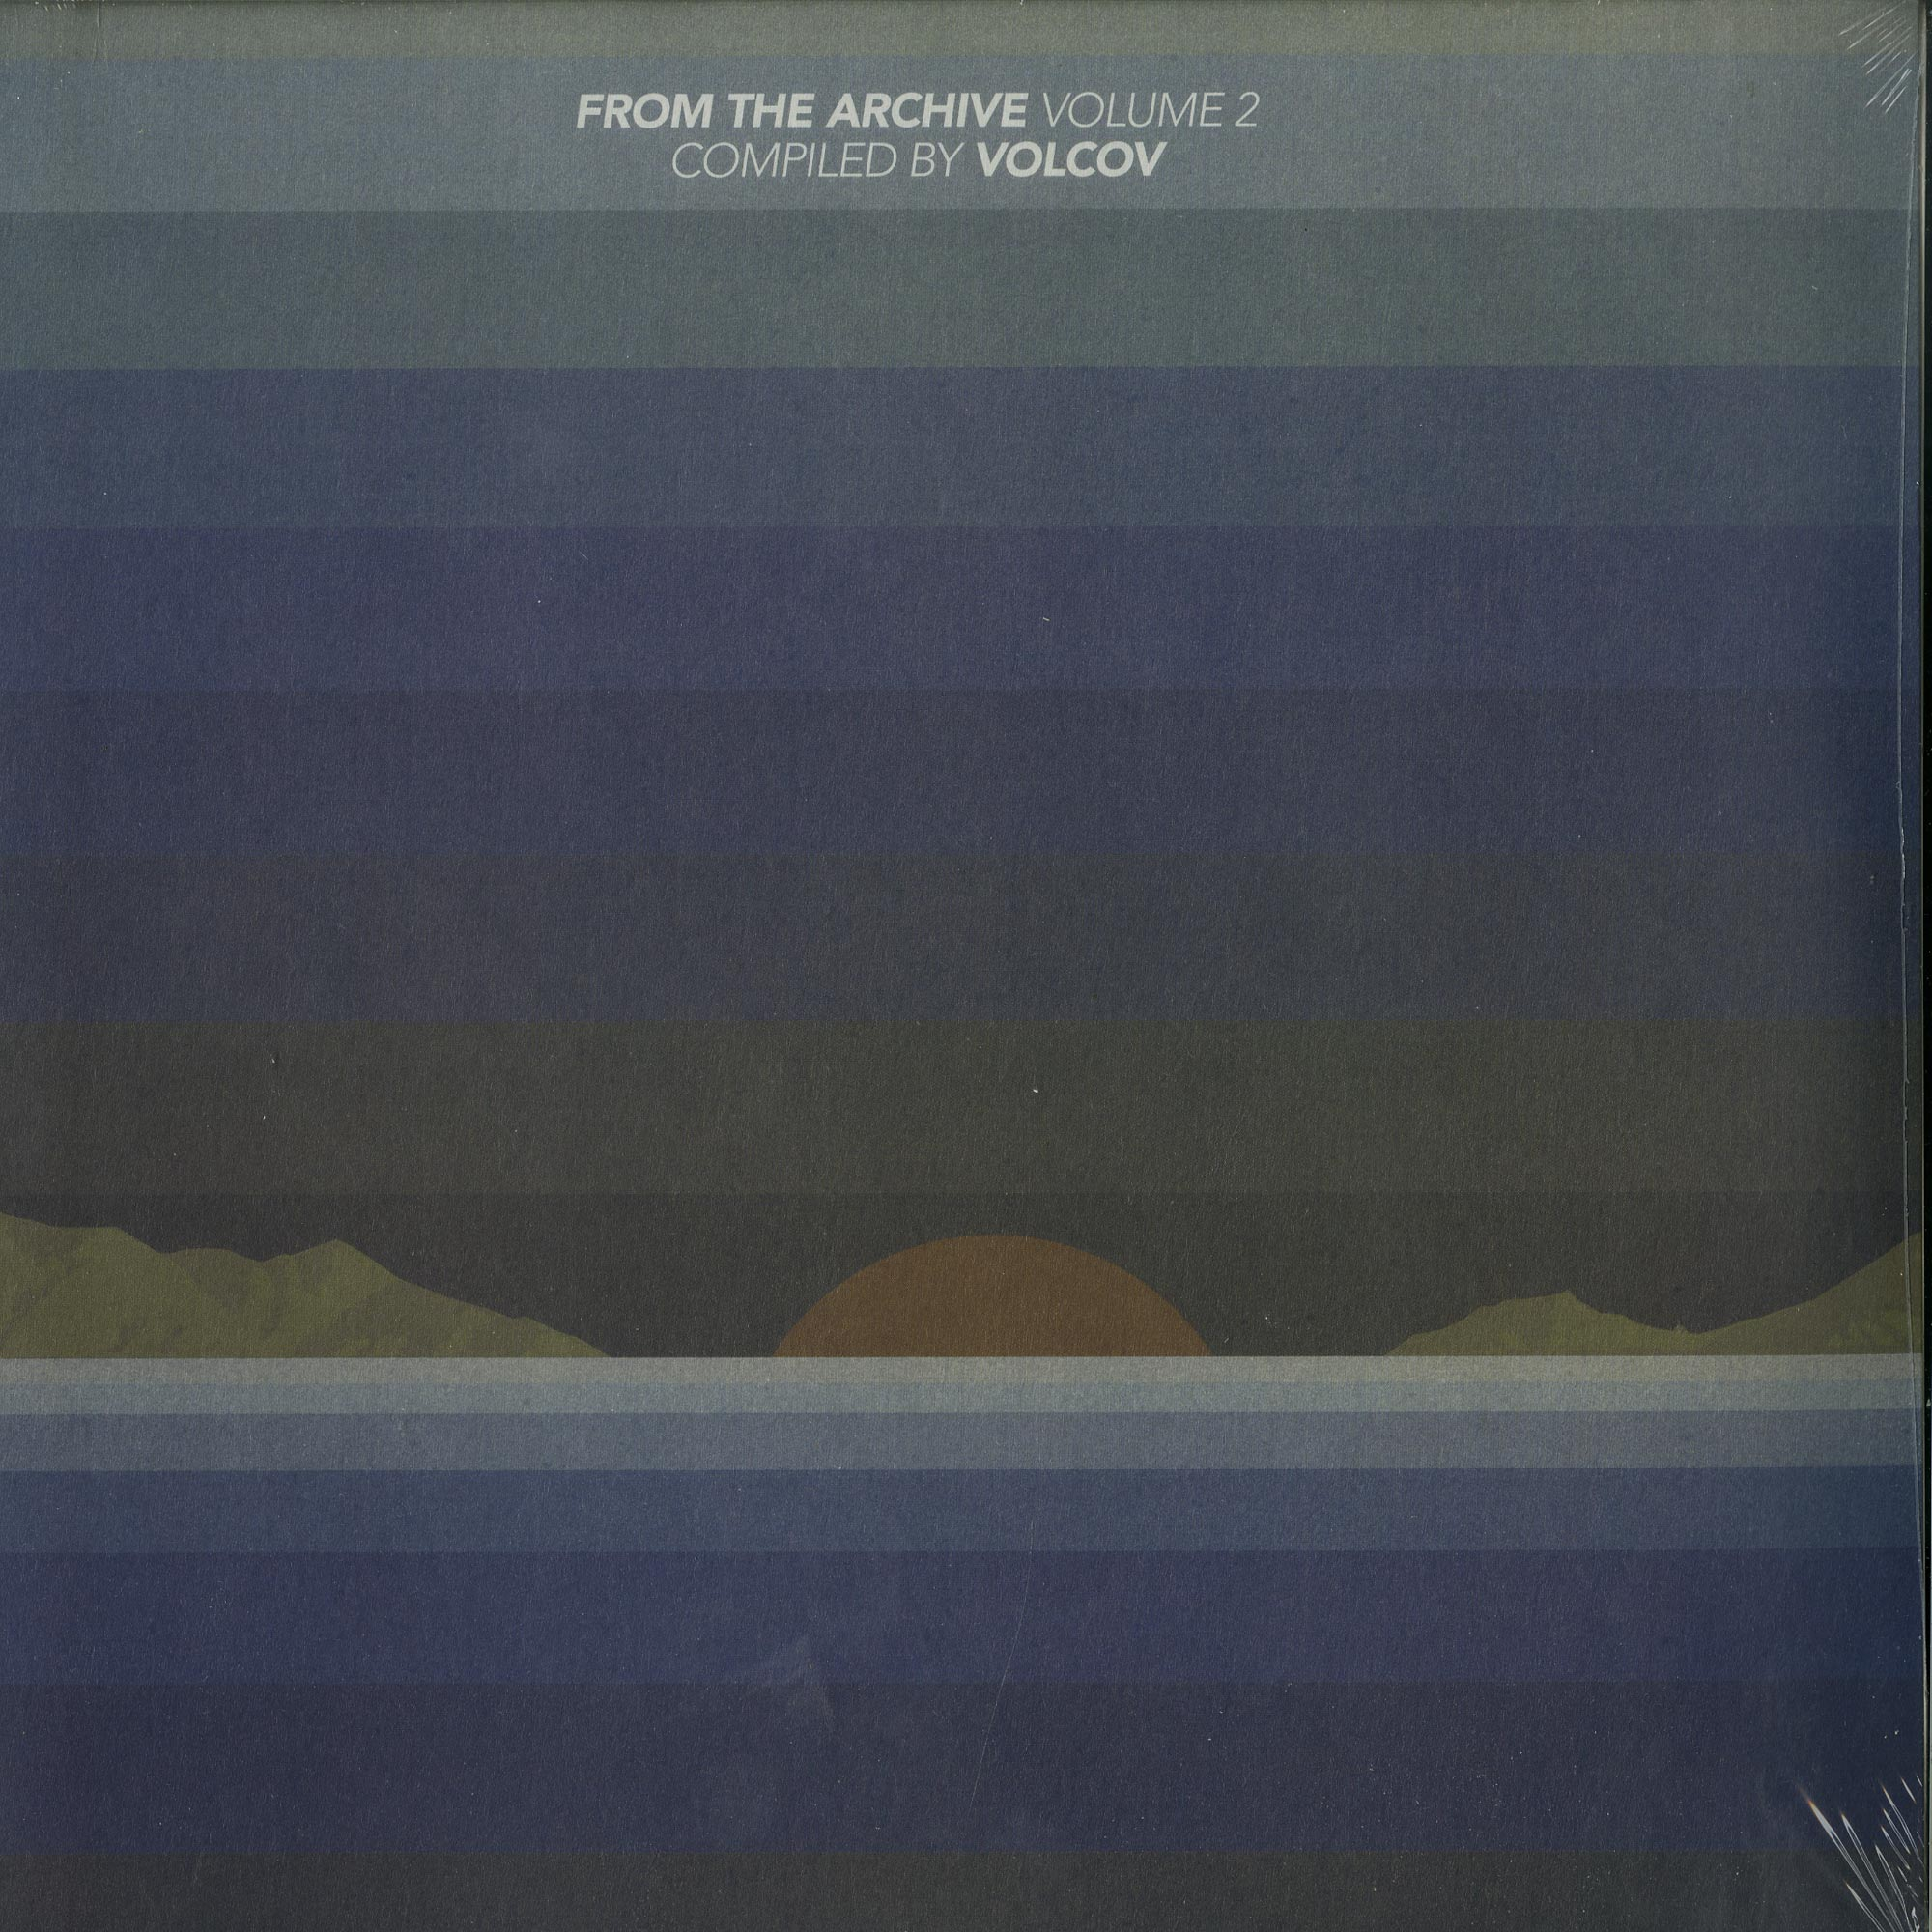 Volcov - FROM THE ARCHIVE VOL. 2